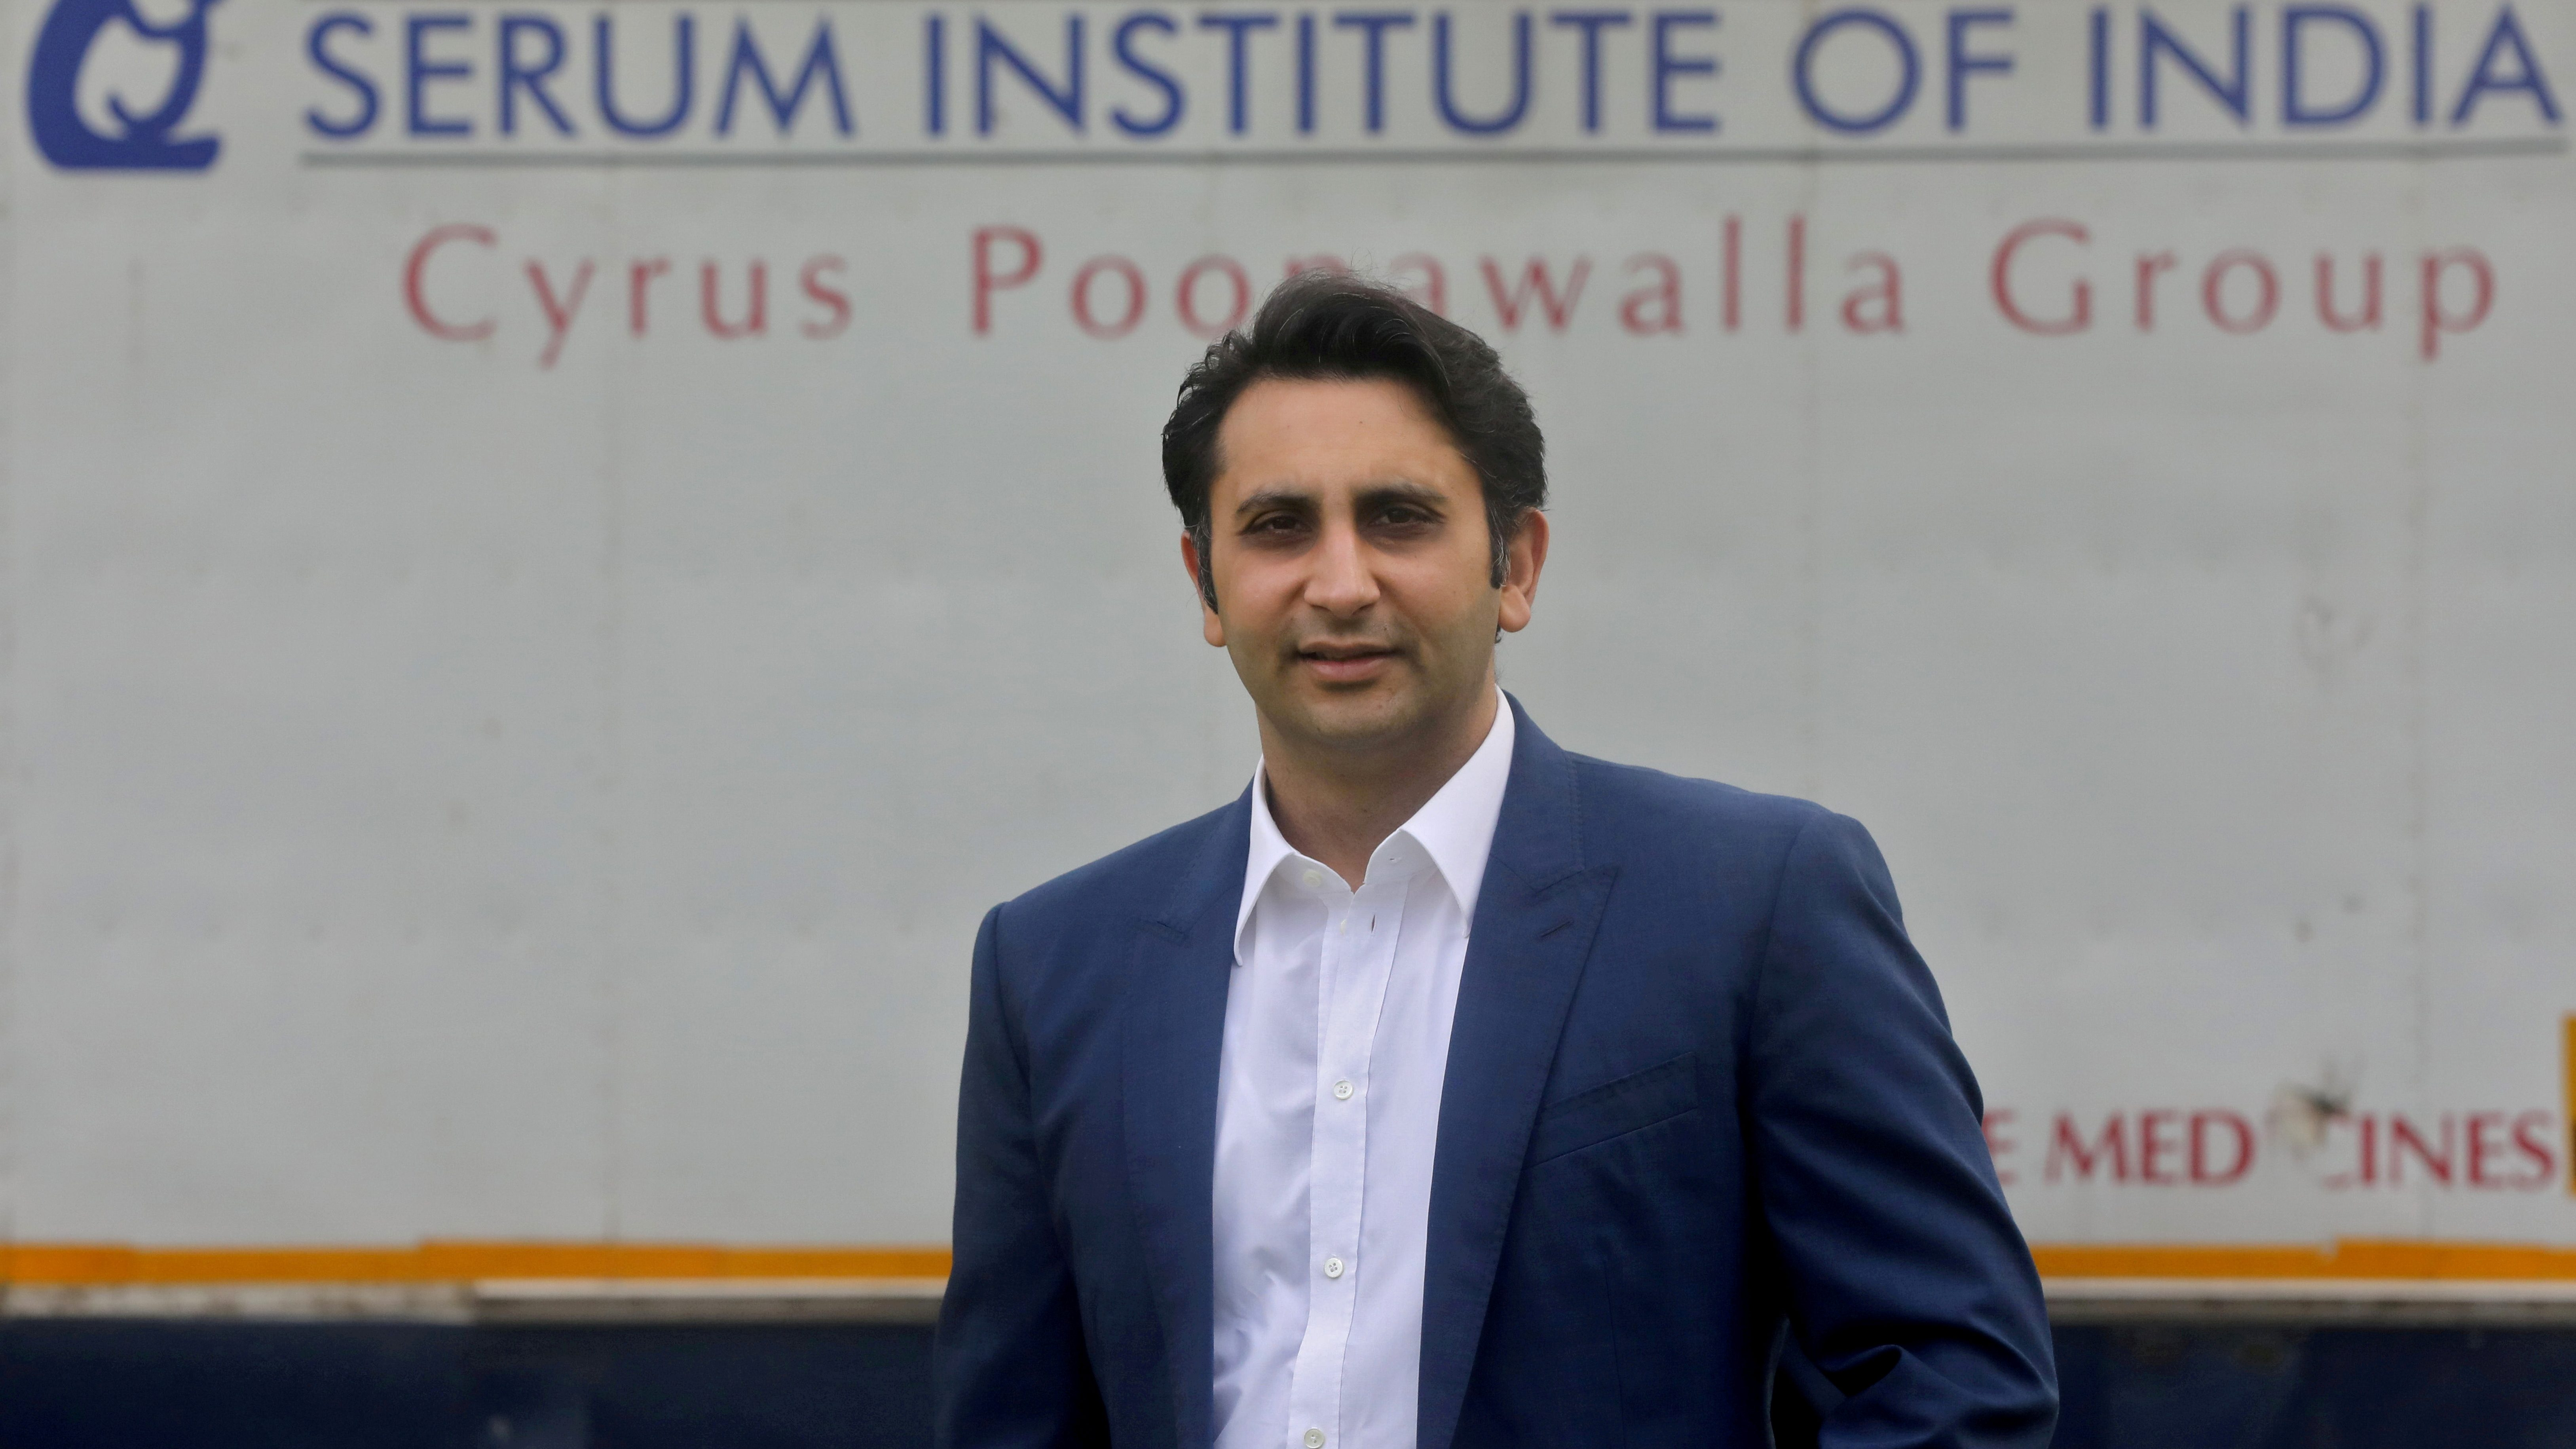 Adar Poonawalla, Chief Executive Officer (CEO) of the Serum Institute of India poses for a picture at the Serum Institute of India, Pune